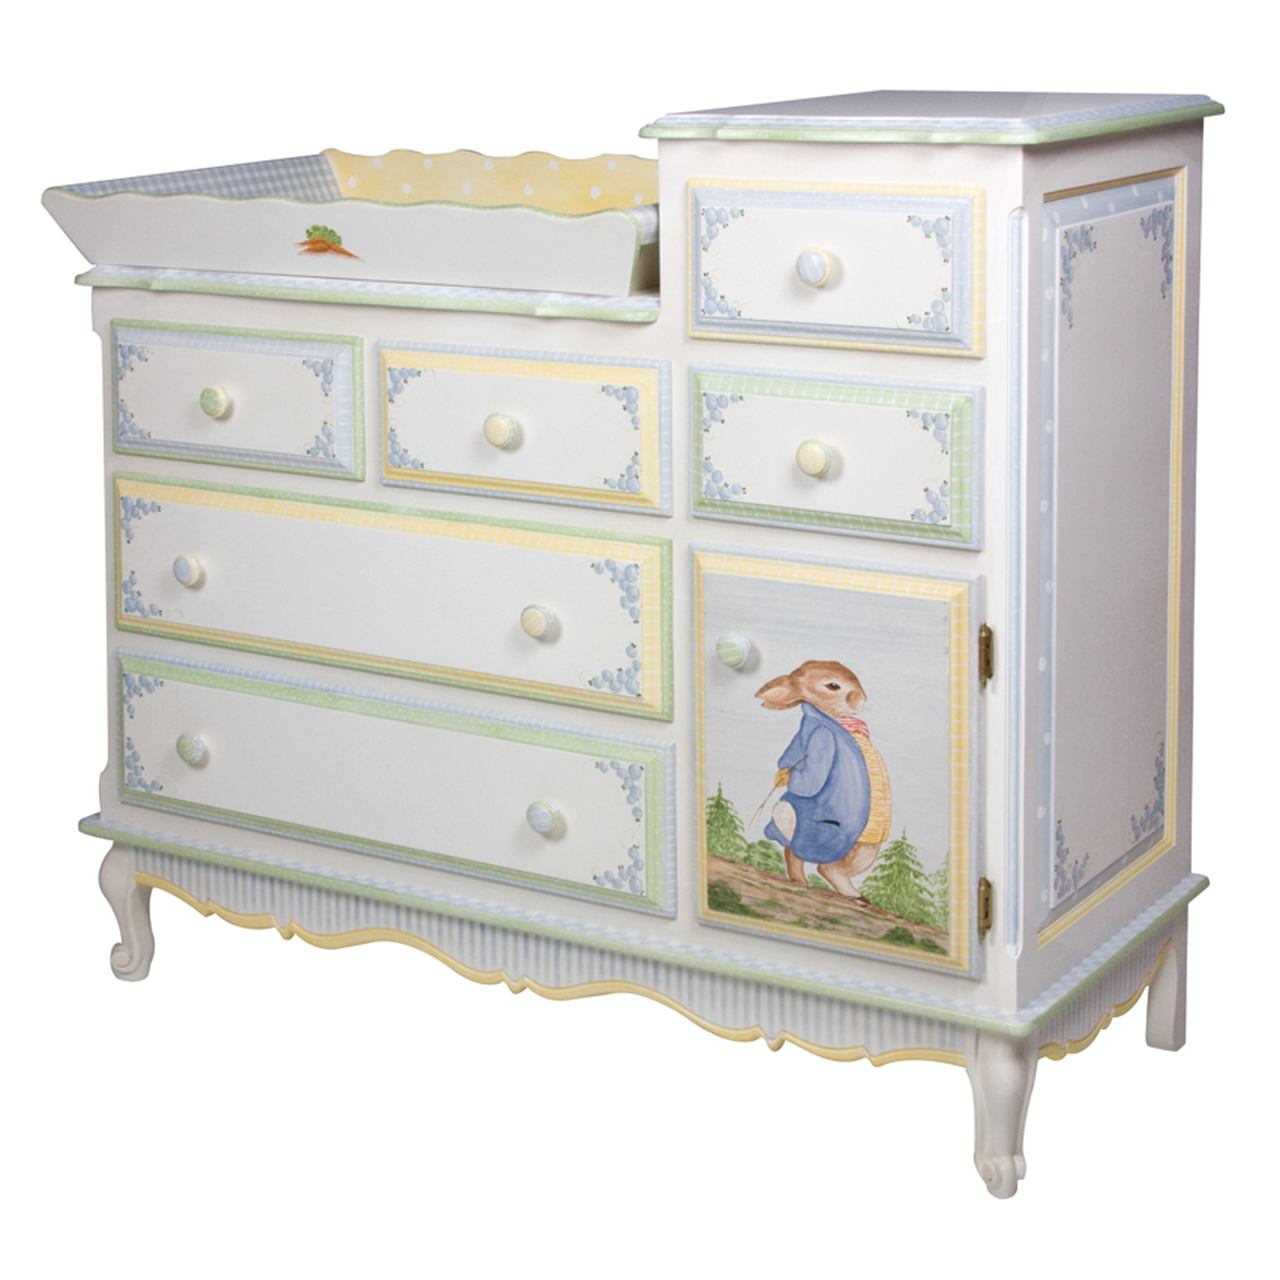 afk furniture luxury baby furniture high end childrens furniture